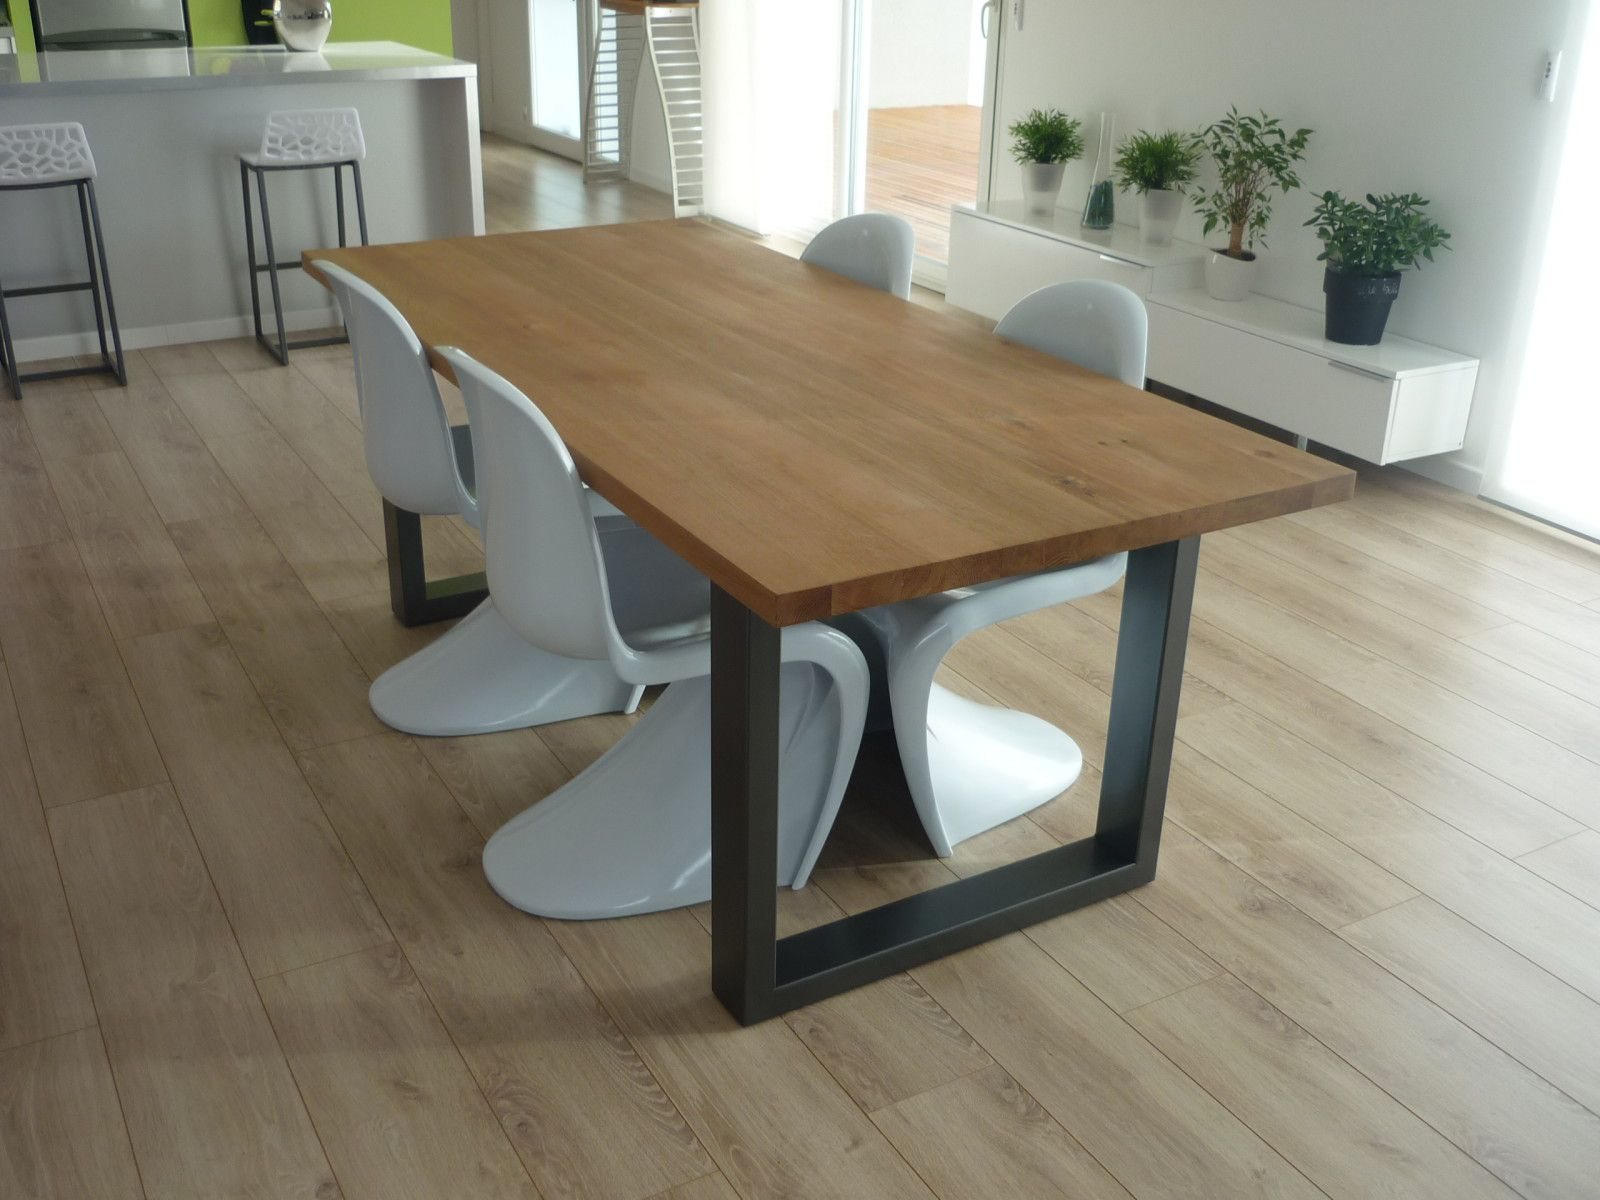 Album table de salle a manger menuiserie agencement design - Dimension table 6 personnes ...